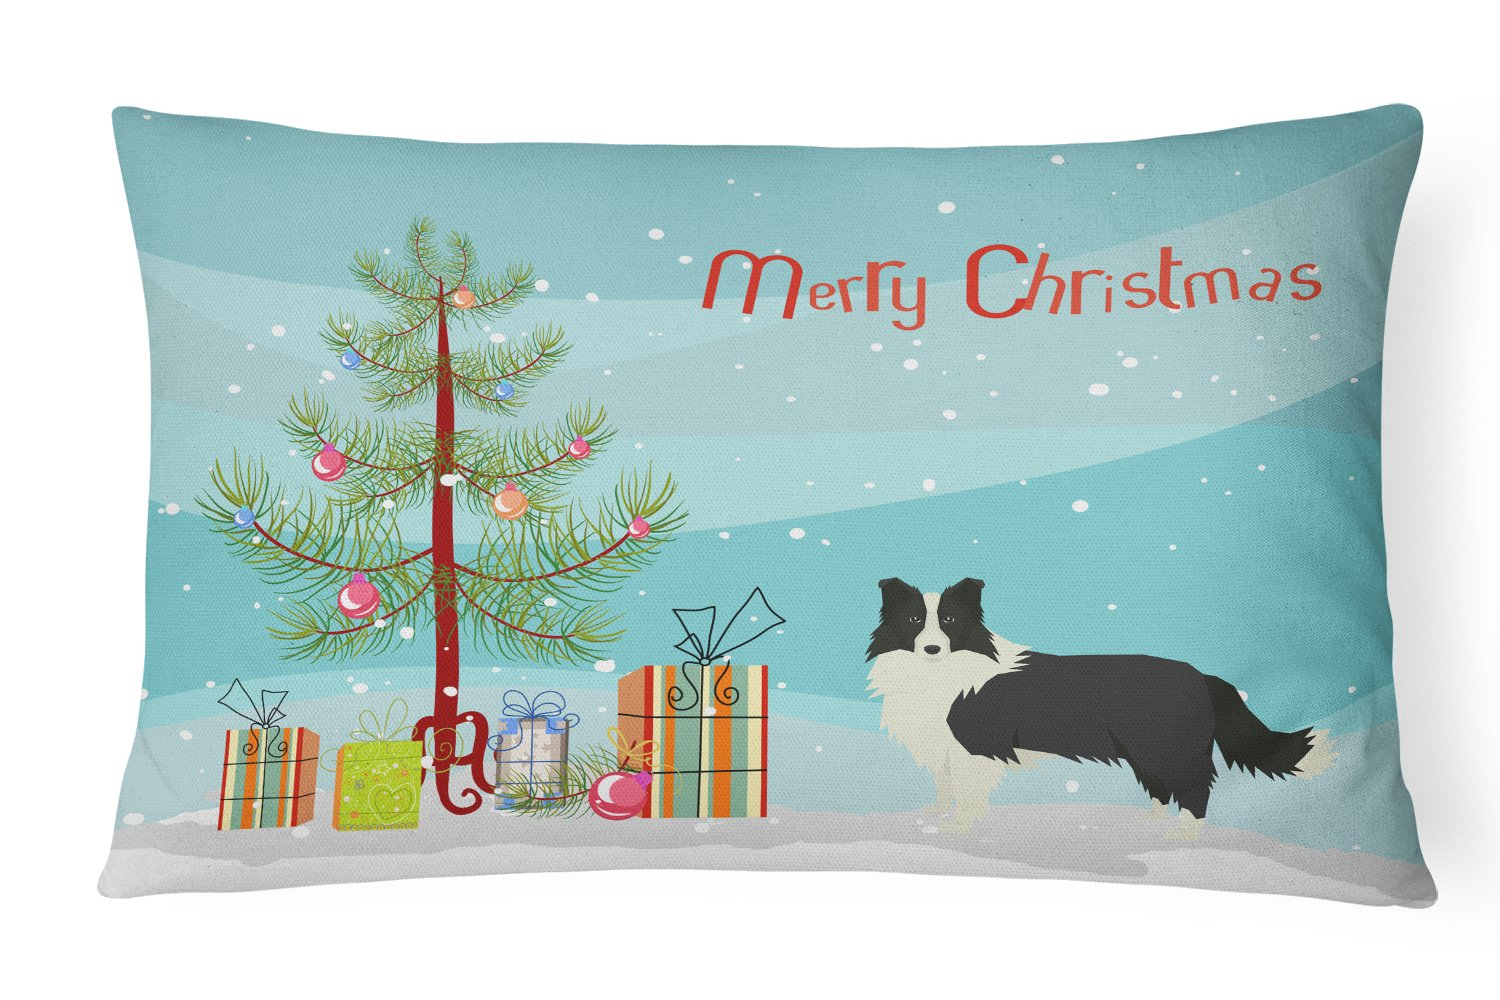 Border Collie Christmas Tree Canvas Fabric Decorative Pillow CK3522PW1216 by Caroline's Treasures